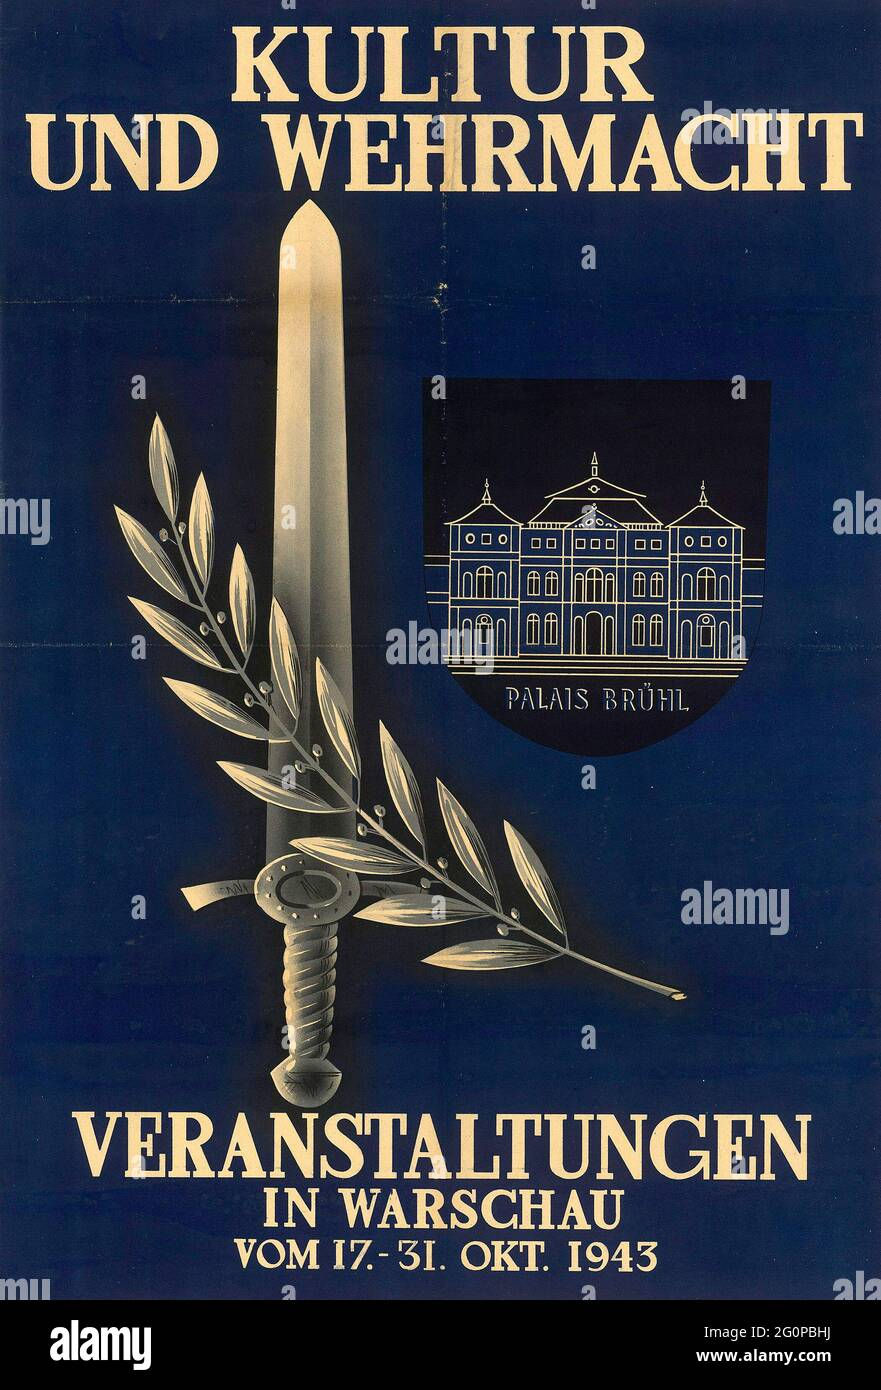 A vintage Nazi propaganda poster for Cultural and Army Events in Warsaw 1943 Stock Photo